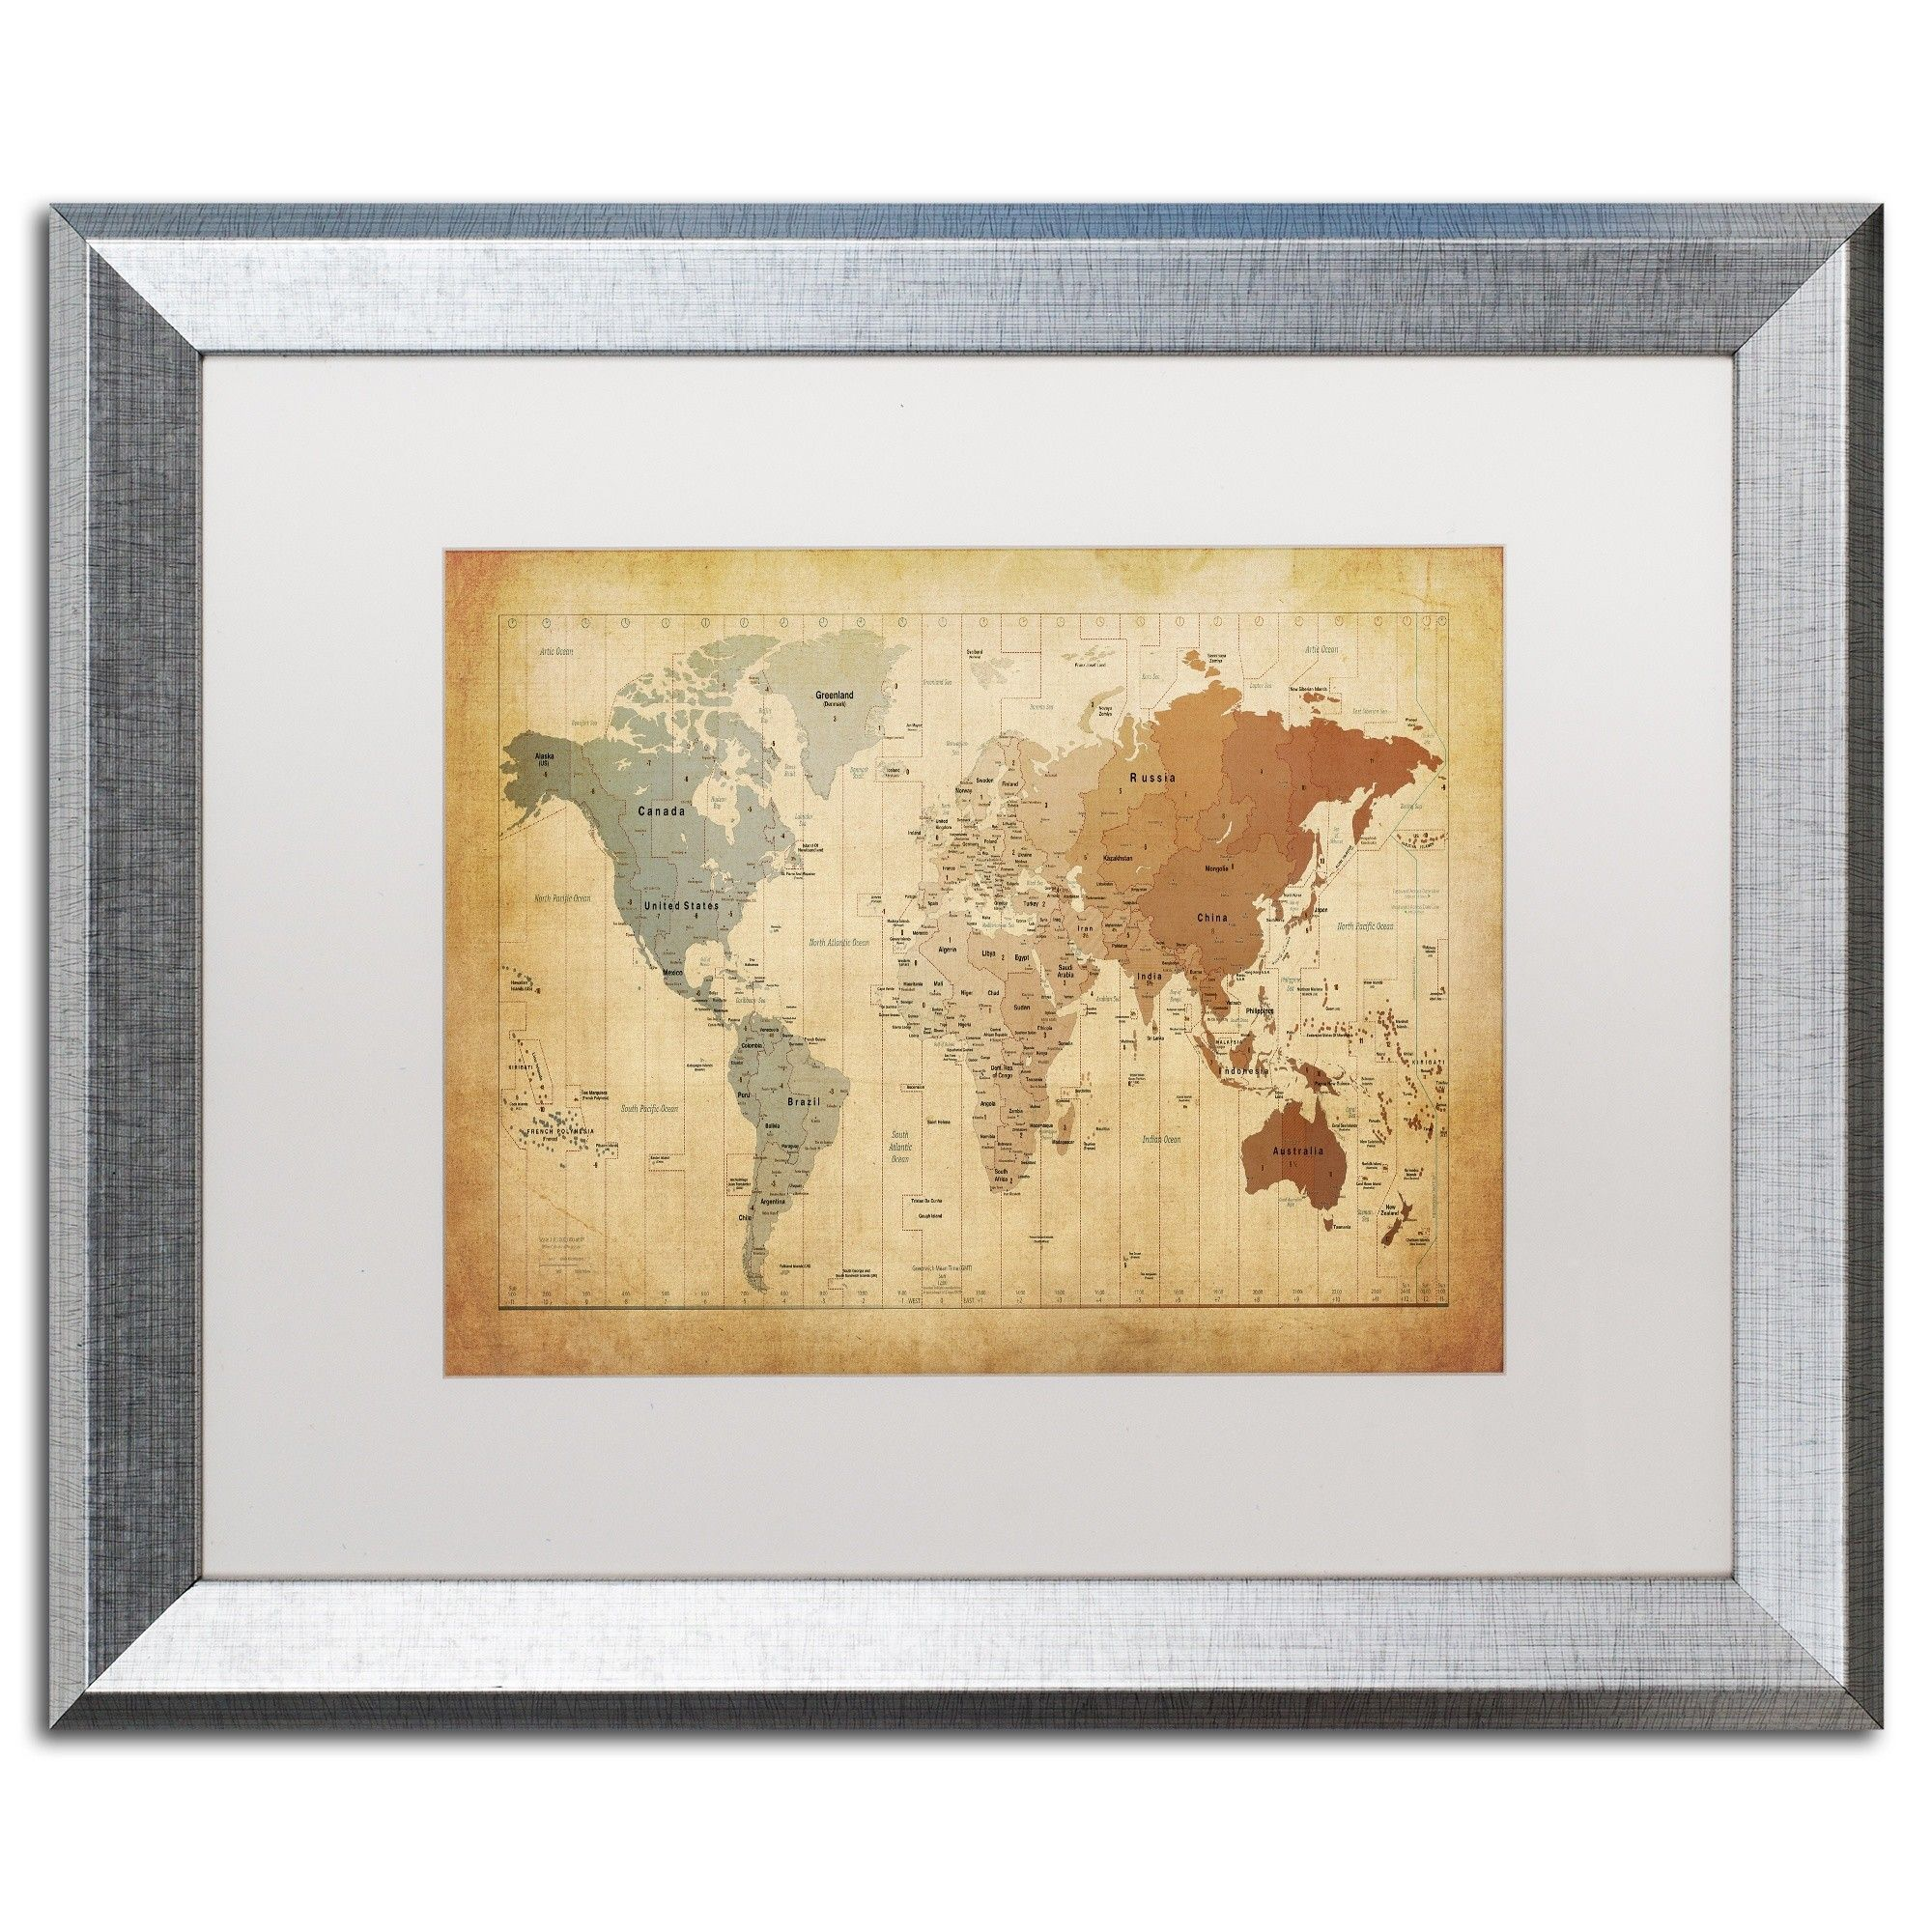 Time zones map of the world by michael tompsett framed graphic art trademark fine art antique world map canvas art by michael tompsett white matte silver frame size 16 x multicolor publicscrutiny Choice Image